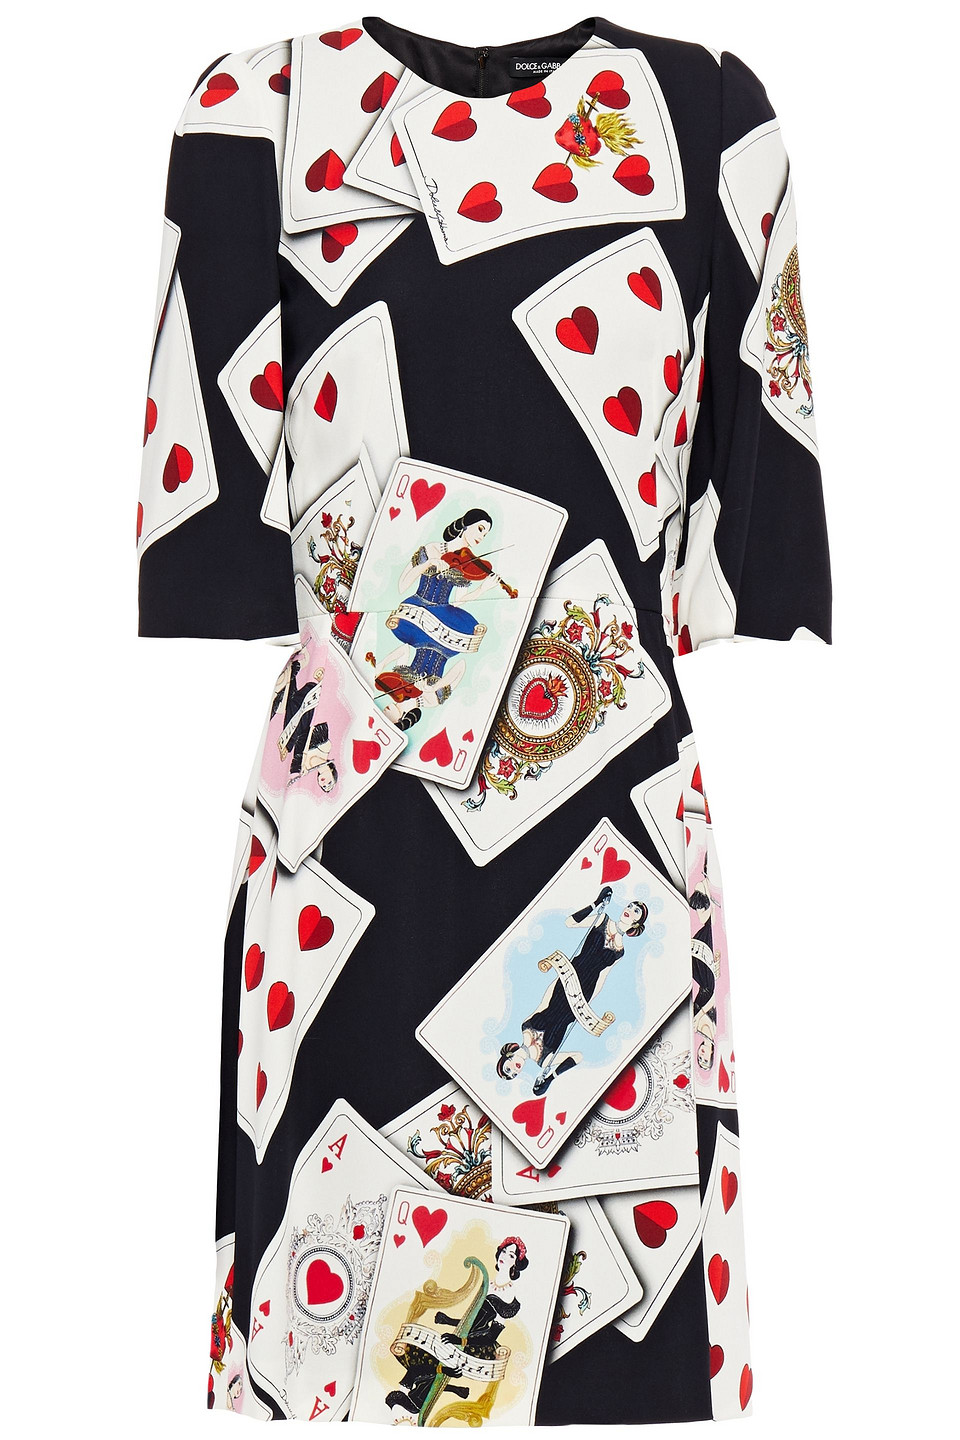 Dolce & Gabbana | Dolce & Gabbana Woman Printed Stretch-crepe Mini Dress Black | Clouty